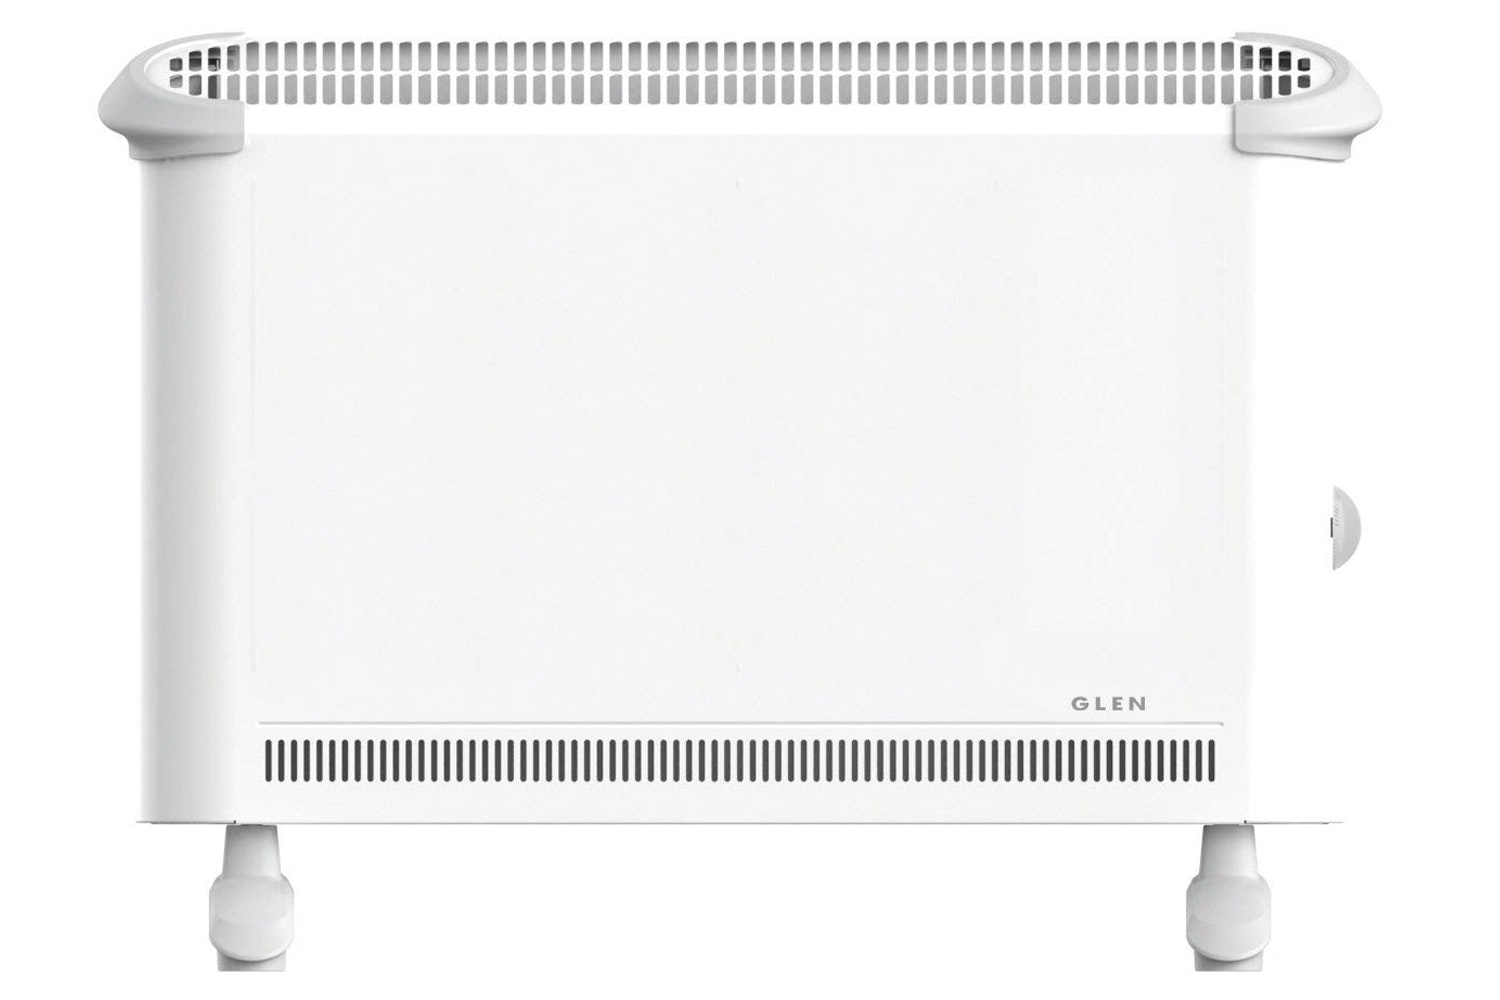 Glen 2KW Electrical Convector Heater | G2TN